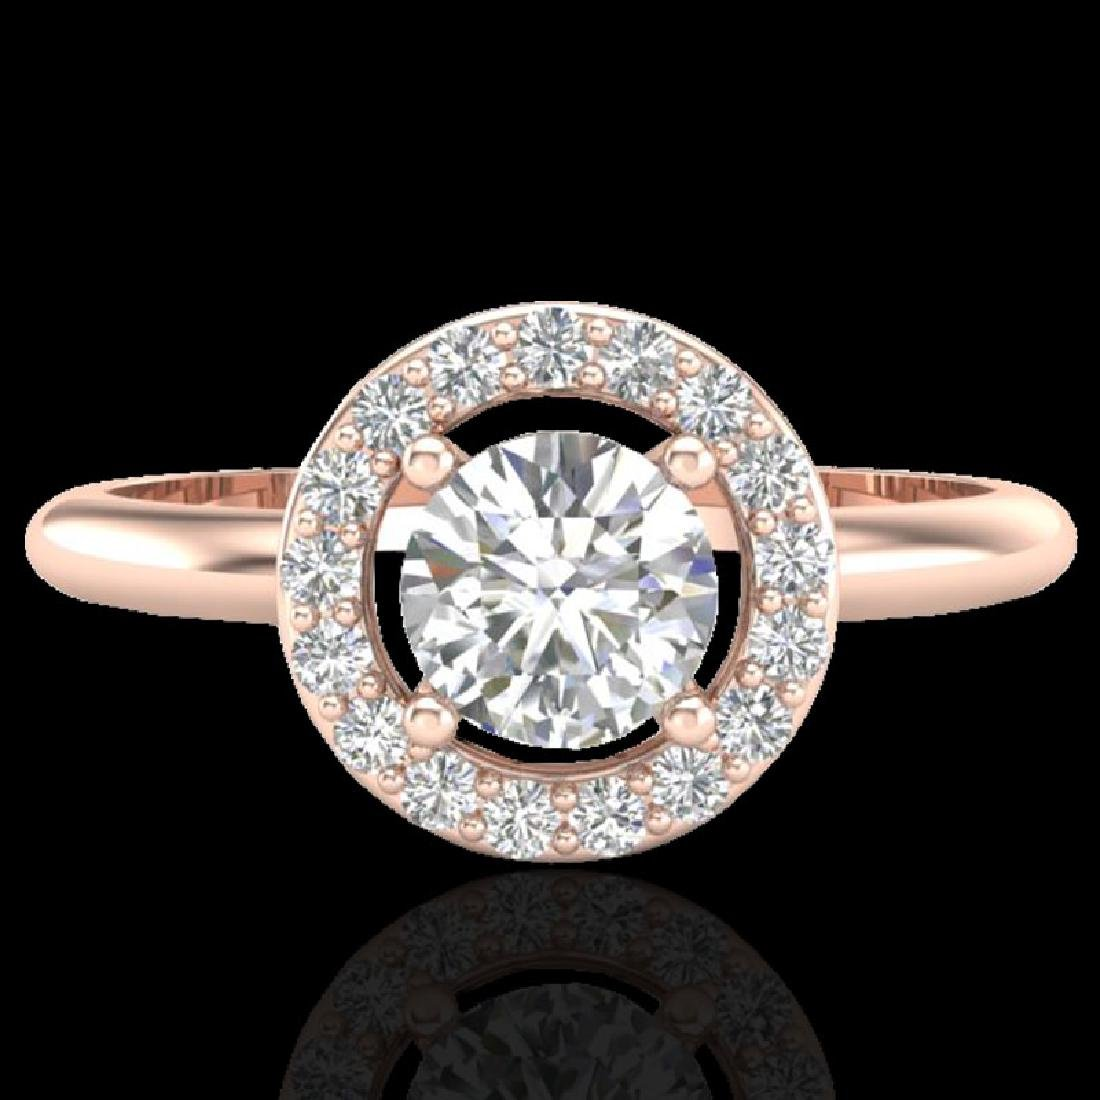 0.70 CTW Micro Pave Halo Solitaire VS/SI Diamond Ring